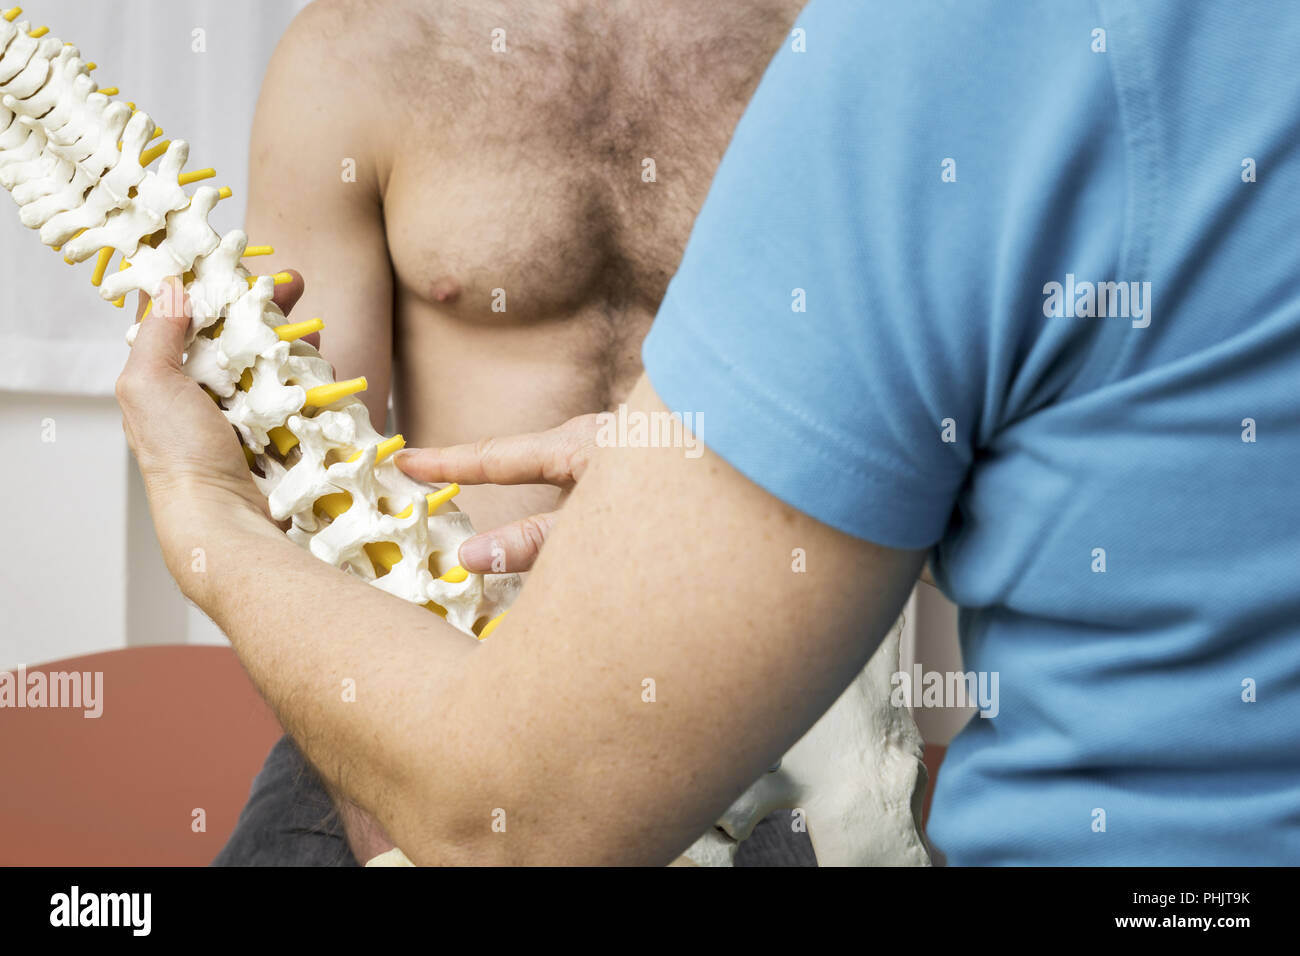 Physiotherapy showing spine - Stock Image